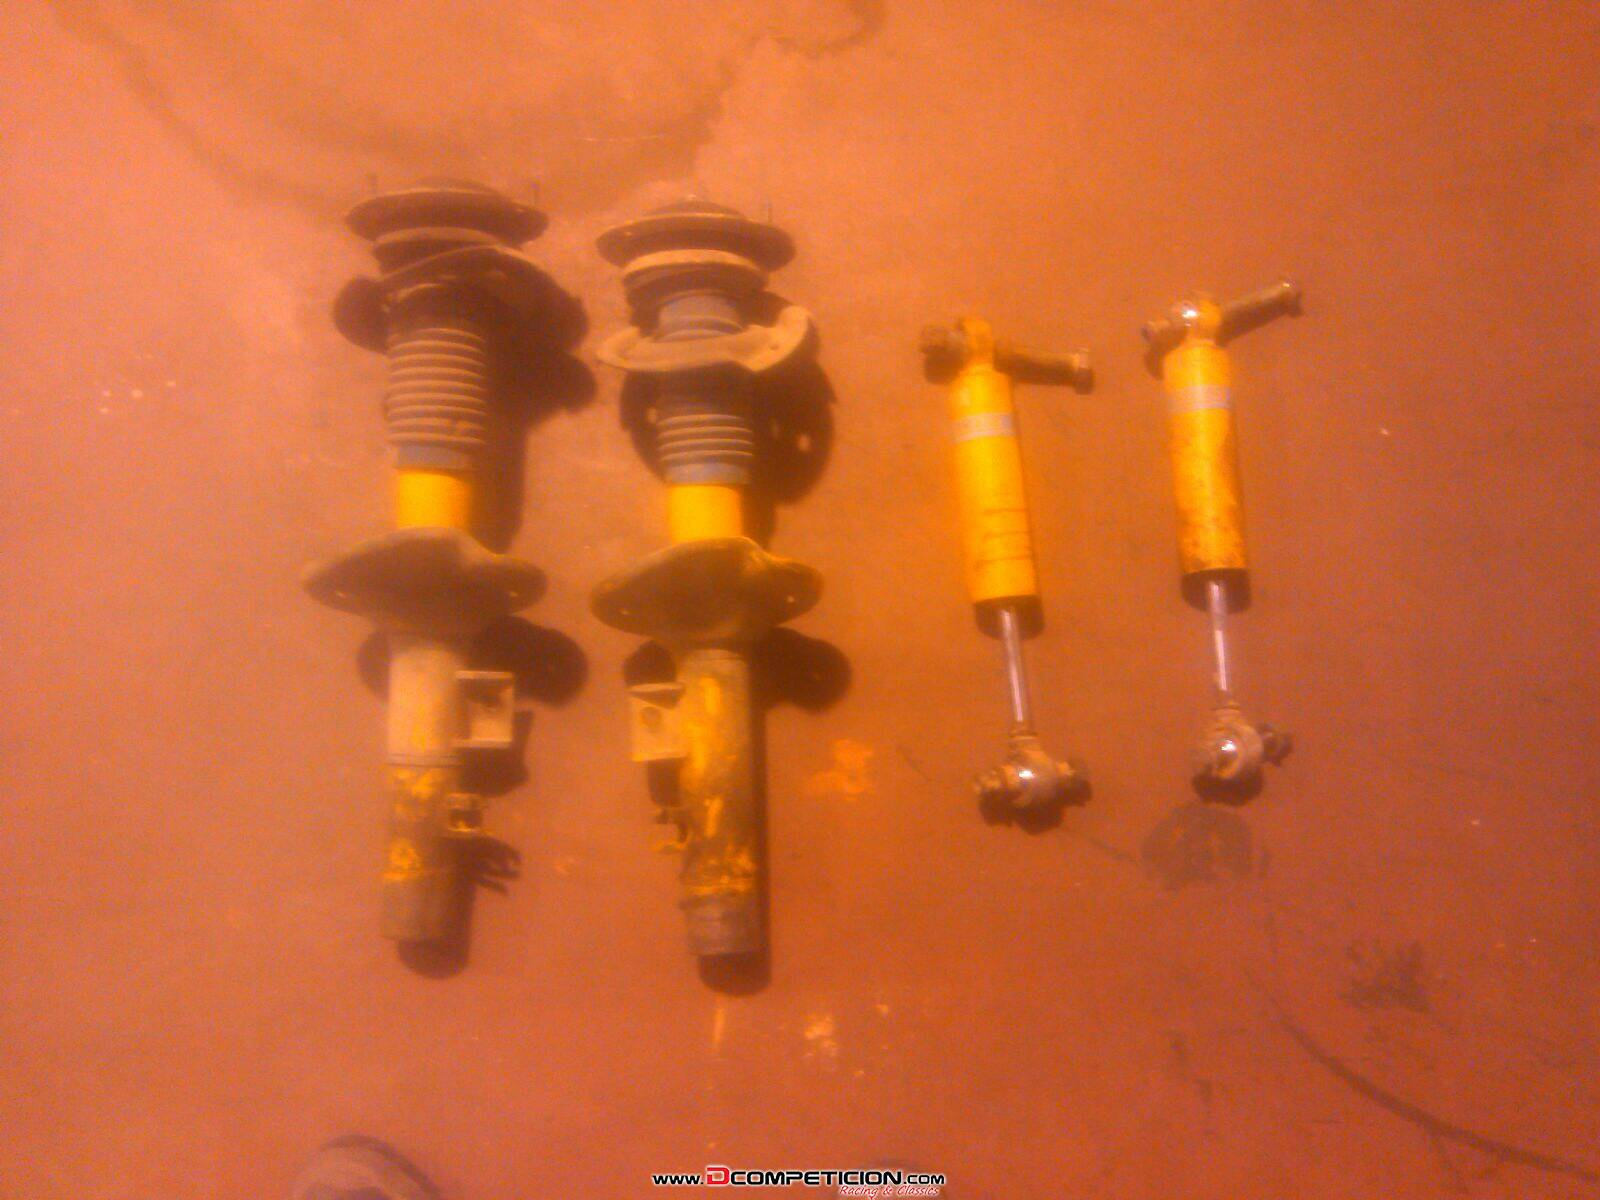 Kit suspensión peugeot